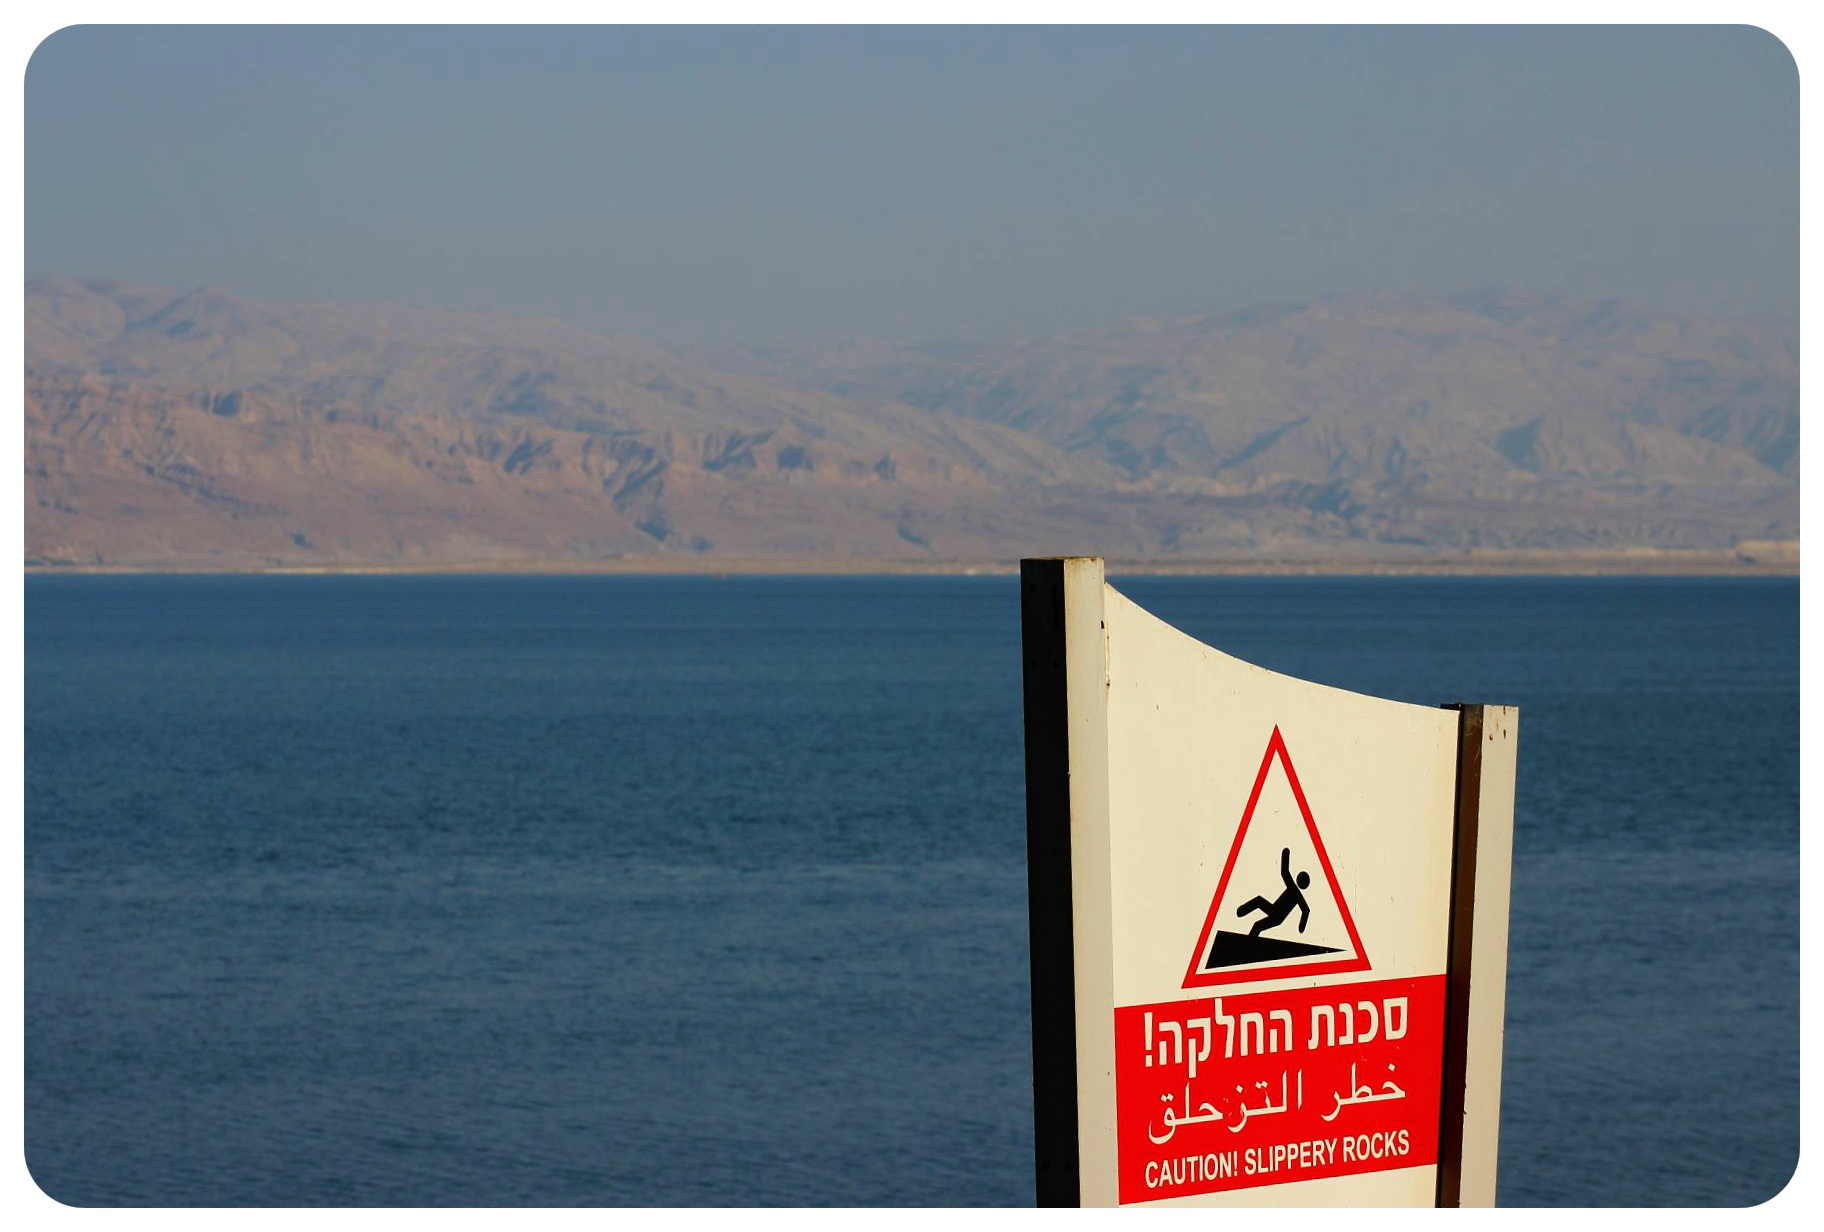 dead sea warning sign